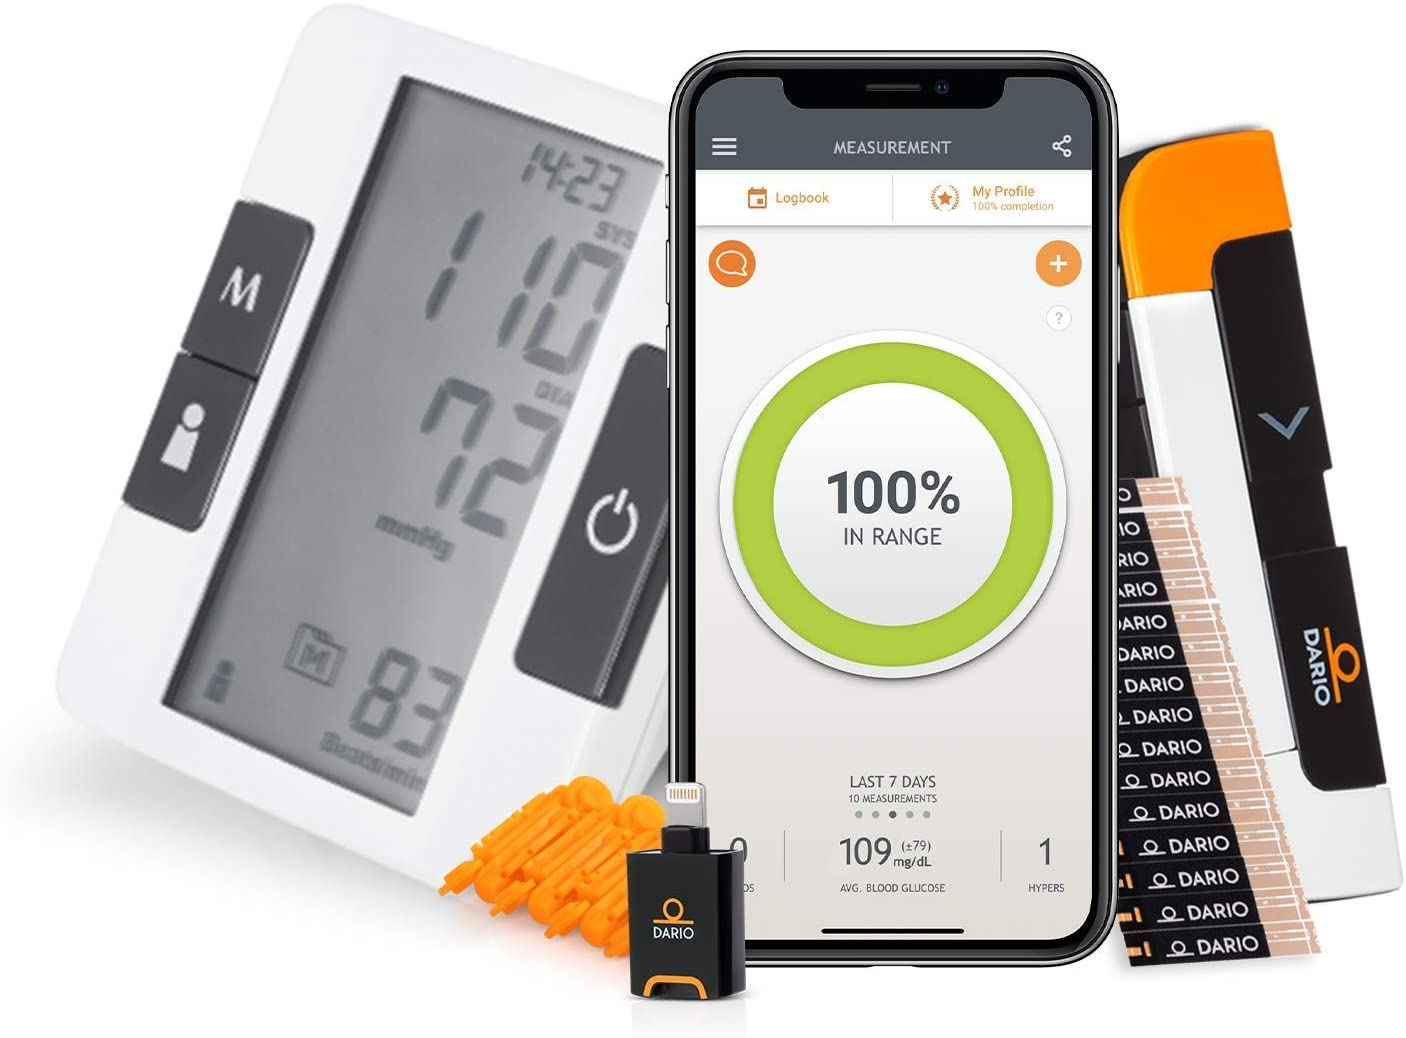 Bundle & Save Dario Diabetes Blood Glucose Meter Kit. Test Blood Sugar Estimate A1c. All-in-One Smart Blood Sugar Monitor Test Strips + Lancets (iPhone Only) + Bluetooth Blood Pressure Monitor